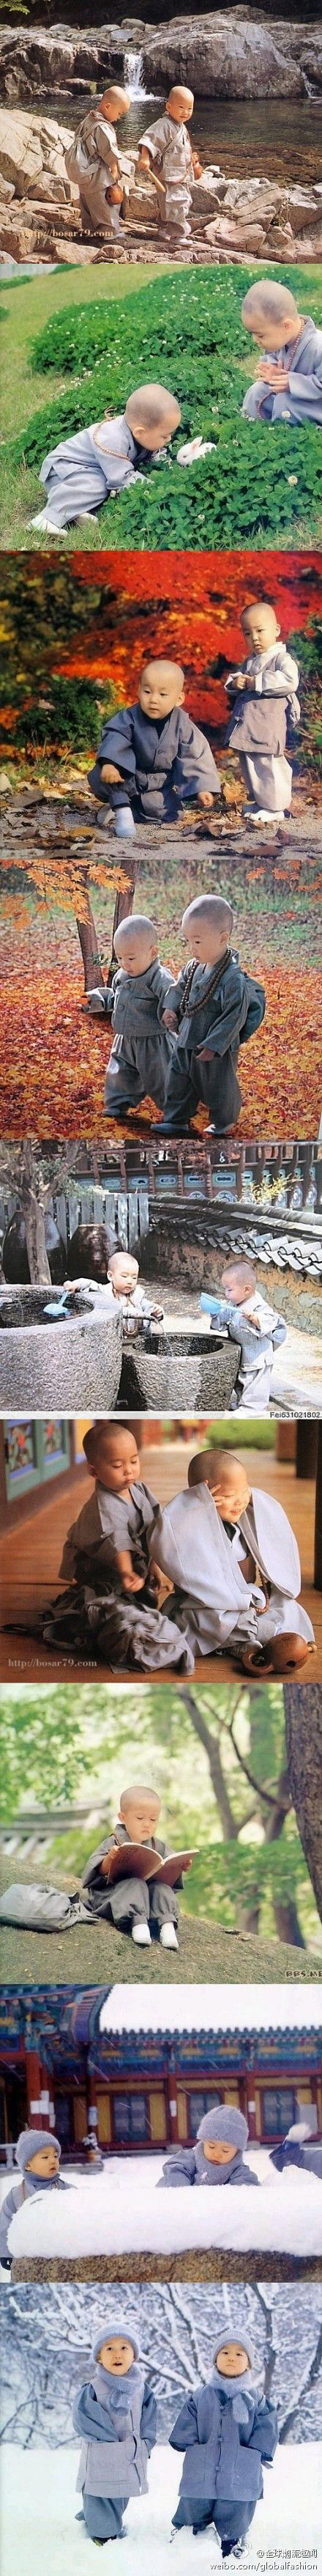 Just my opinion, but for what it's worth: I object to children being raised like this. They haven't even had a chance to experience life yet. They aren't old enough to make their own choices about what they want out of life. Buddhist monks may do good in the world (I'm not that familiar with their doings), but this just seems so wrong to me (mkc). Pin from Chikako Asai.